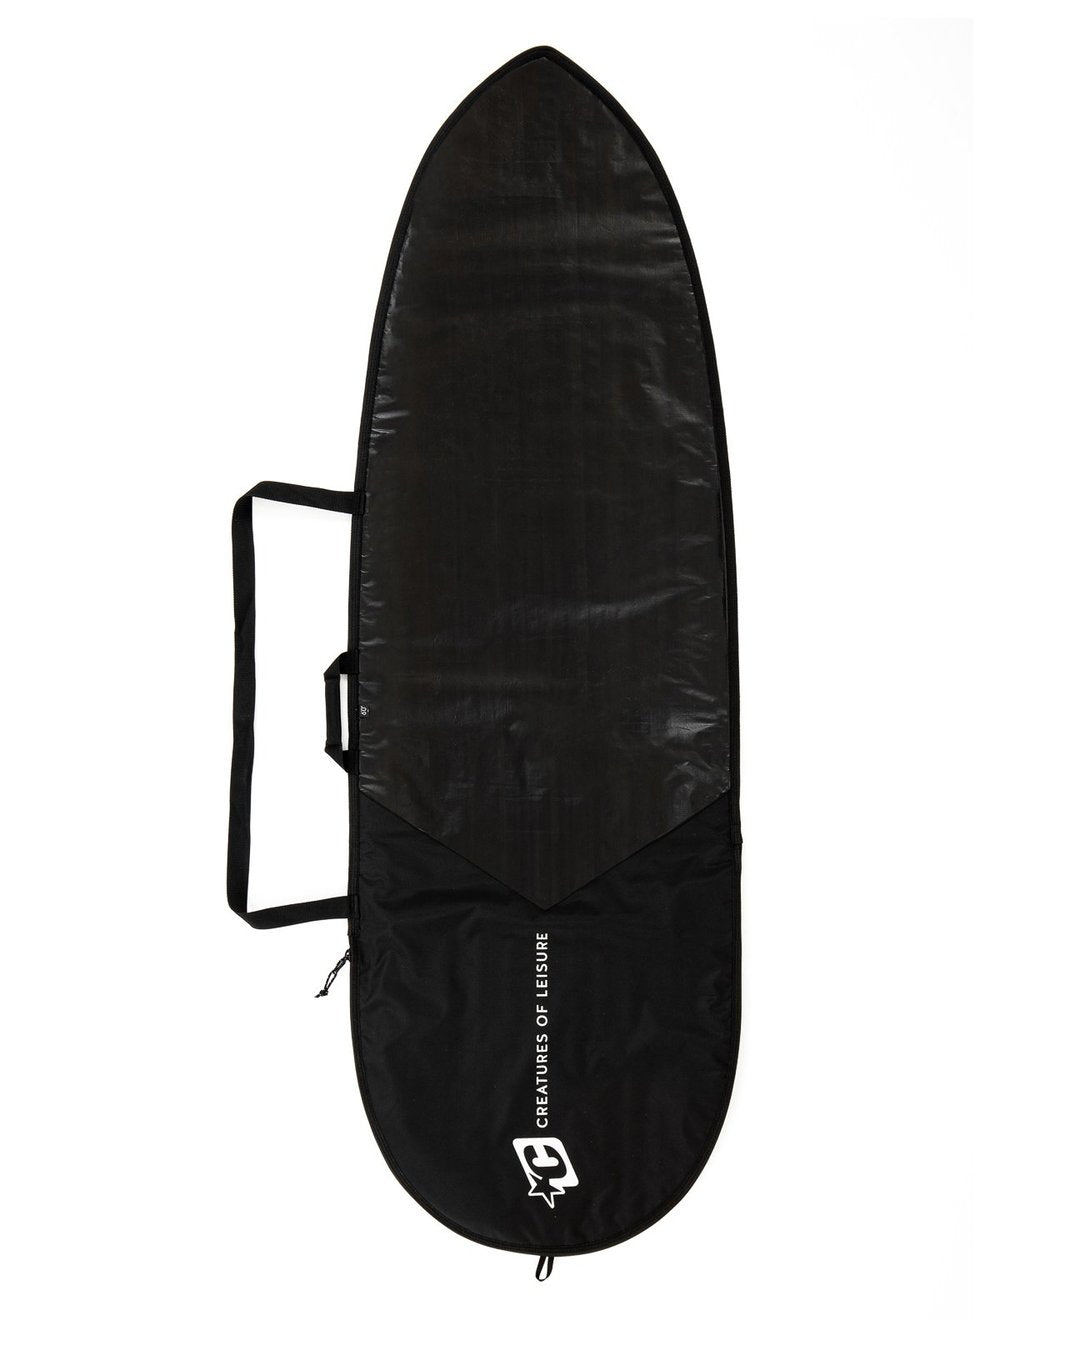 "Creatures FISH ICON LITE 6'3"" : BLACK SILVER - Board Store CreaturesBoardcover"